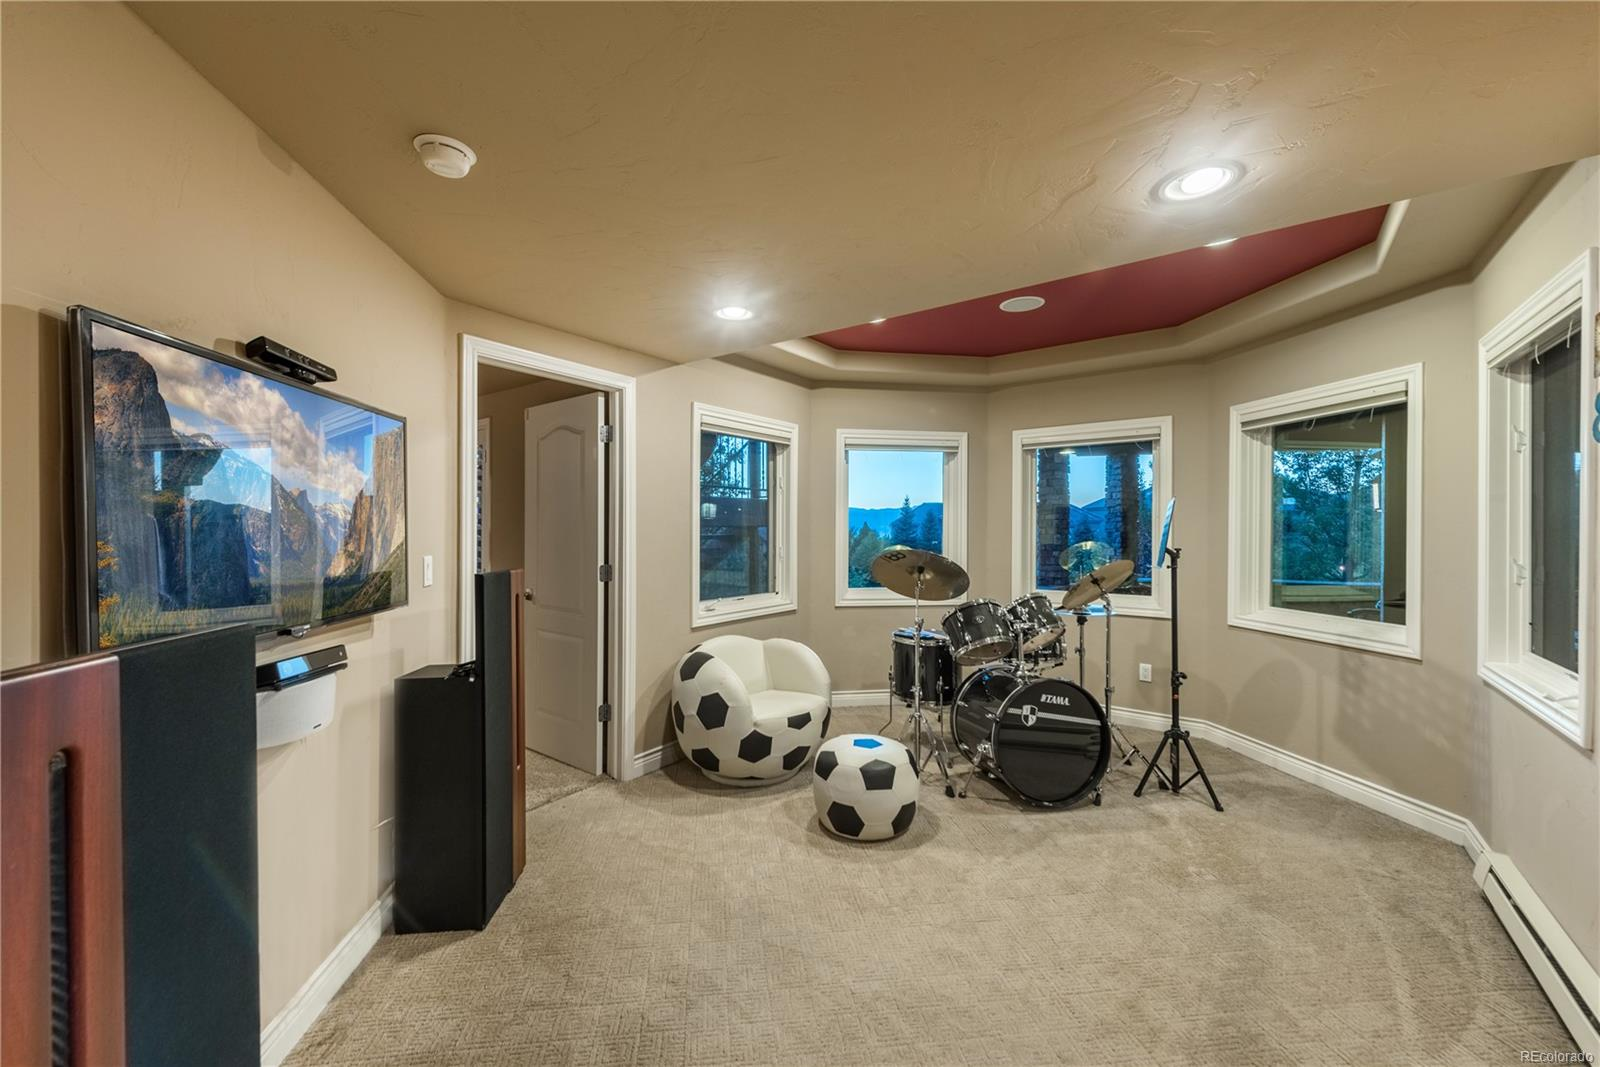 Bonus room is ideal for video games or lounging.